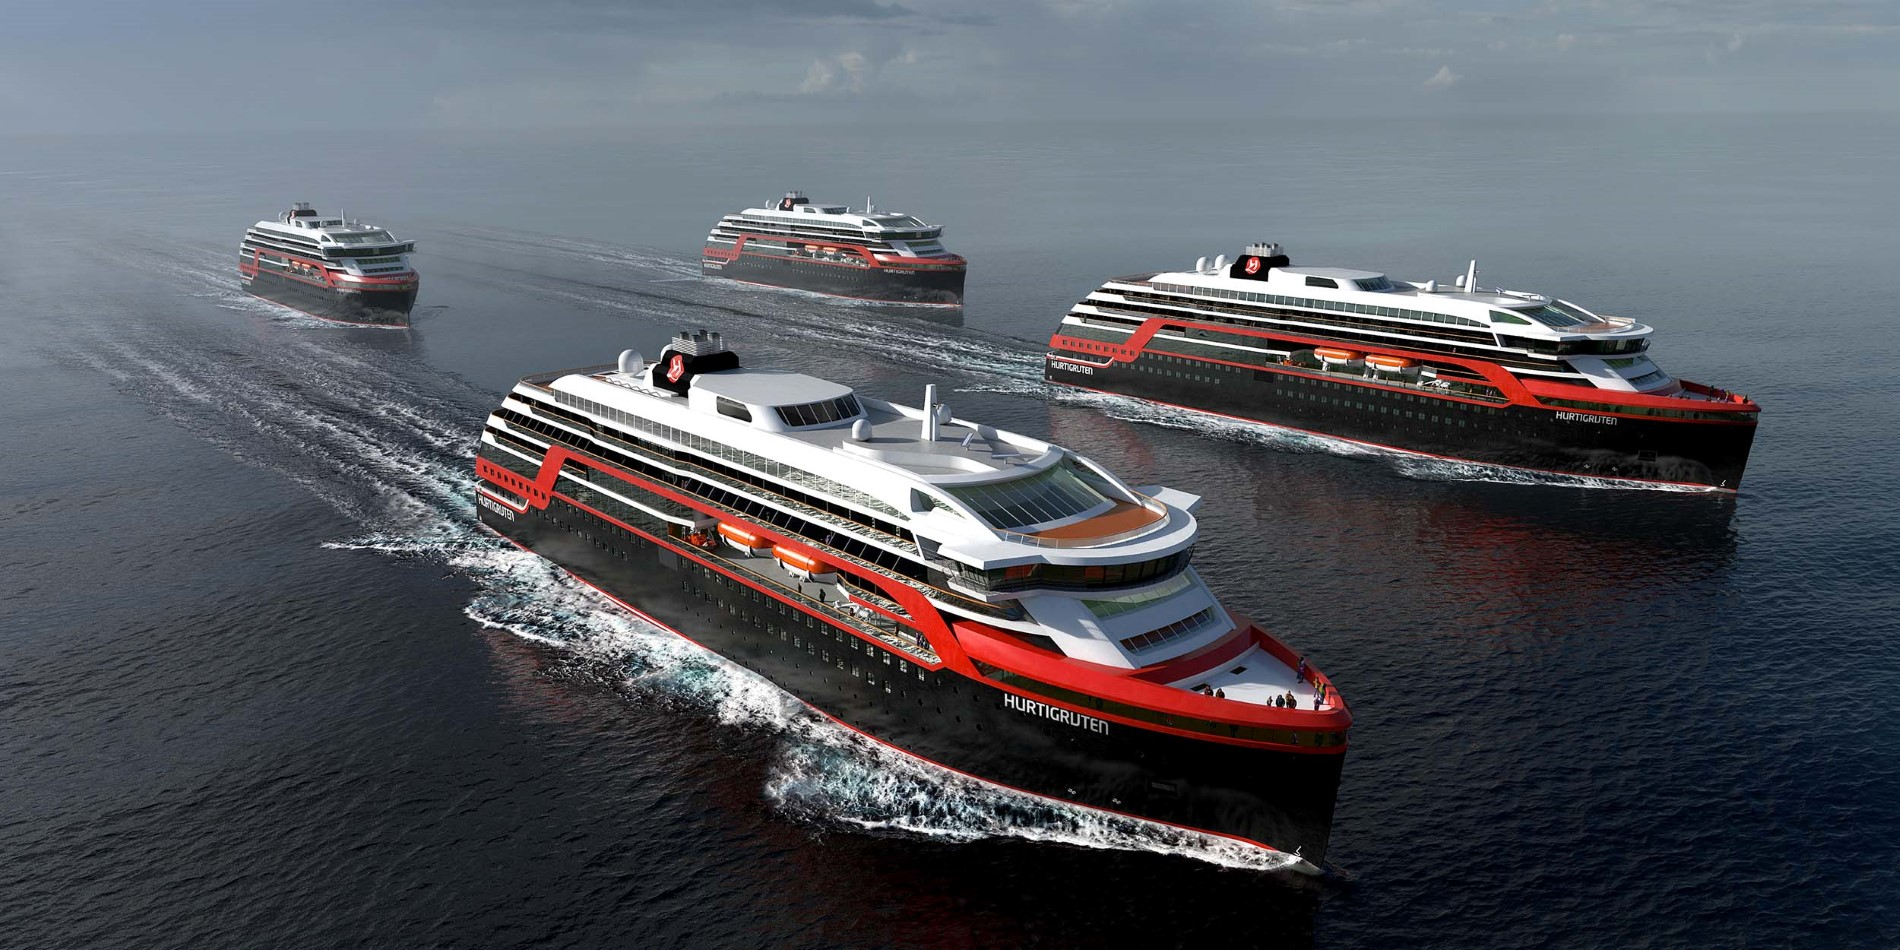 2500x1250_Hurtigruten New Ships x 4_Press Release_®Rolls-Royce.jpg